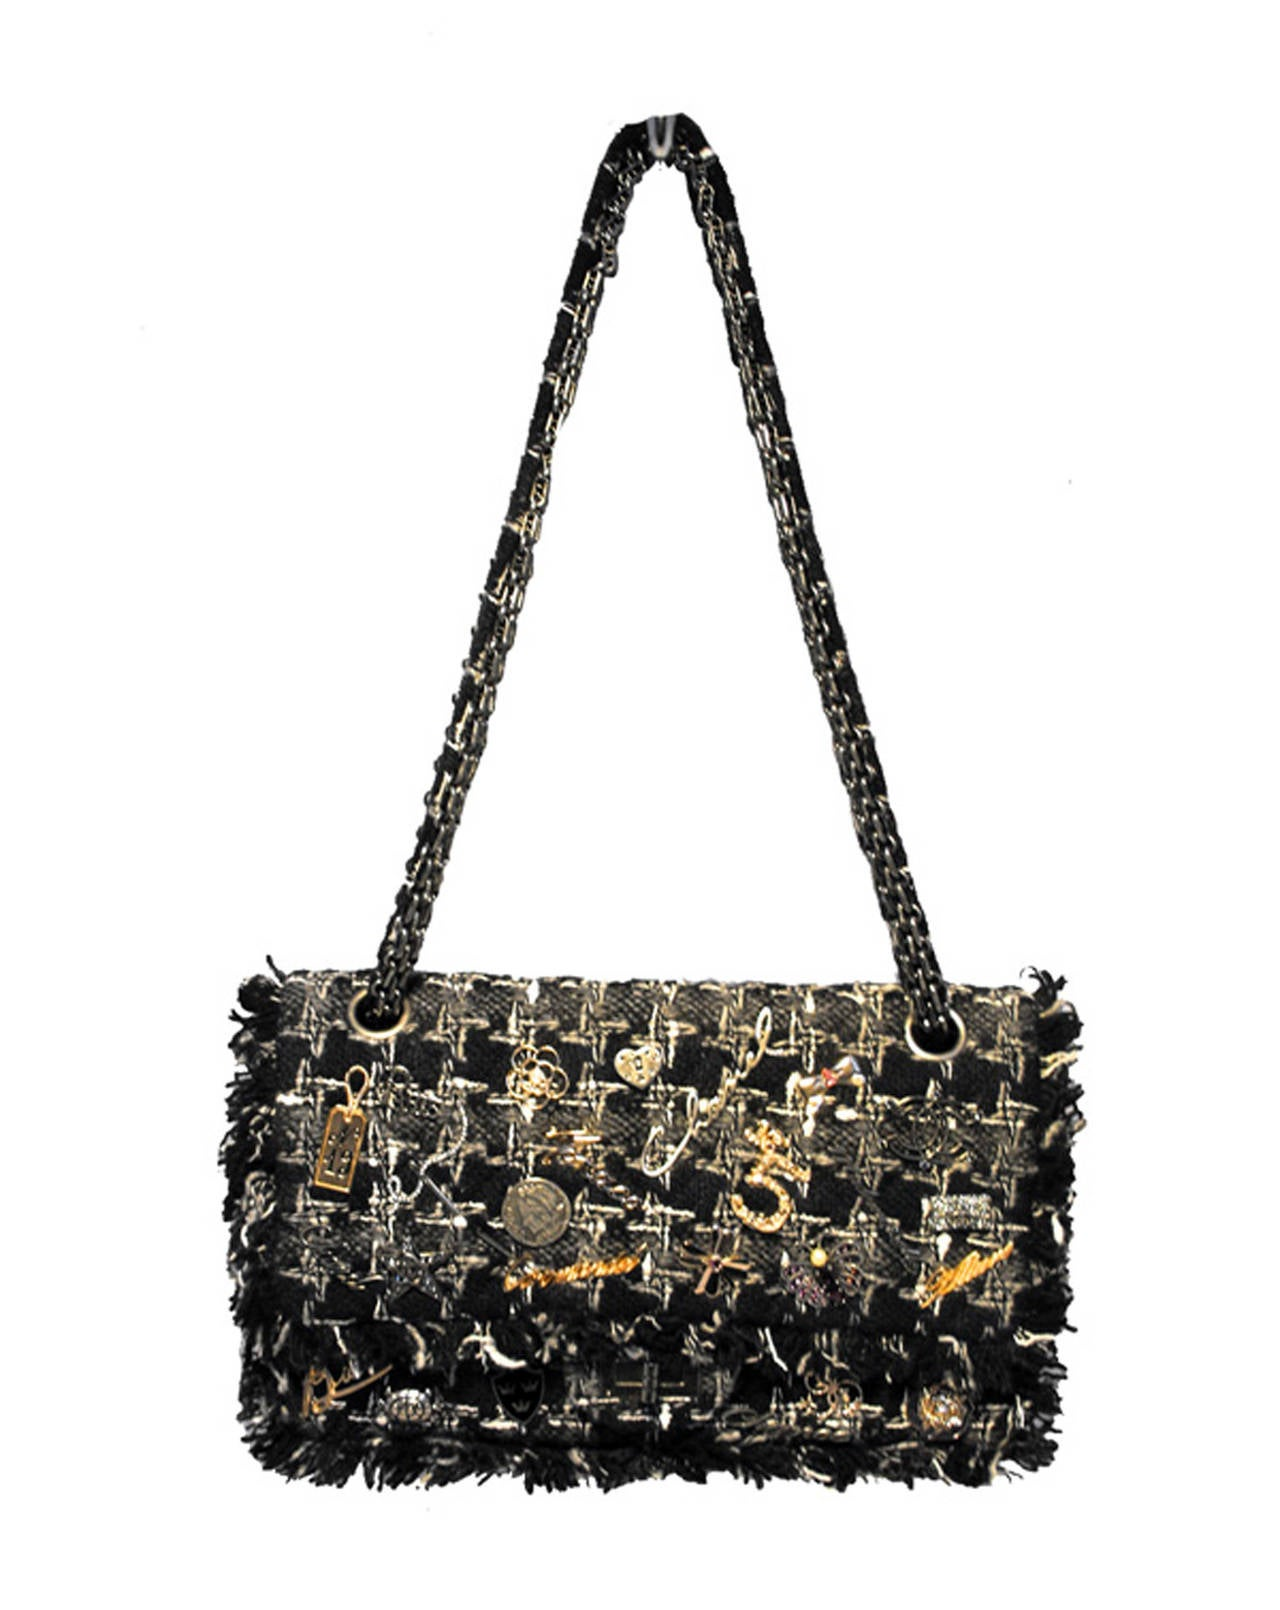 Chanel Black Tweed Charms Classic 10inch 2.55 Flap-runway Edition 2